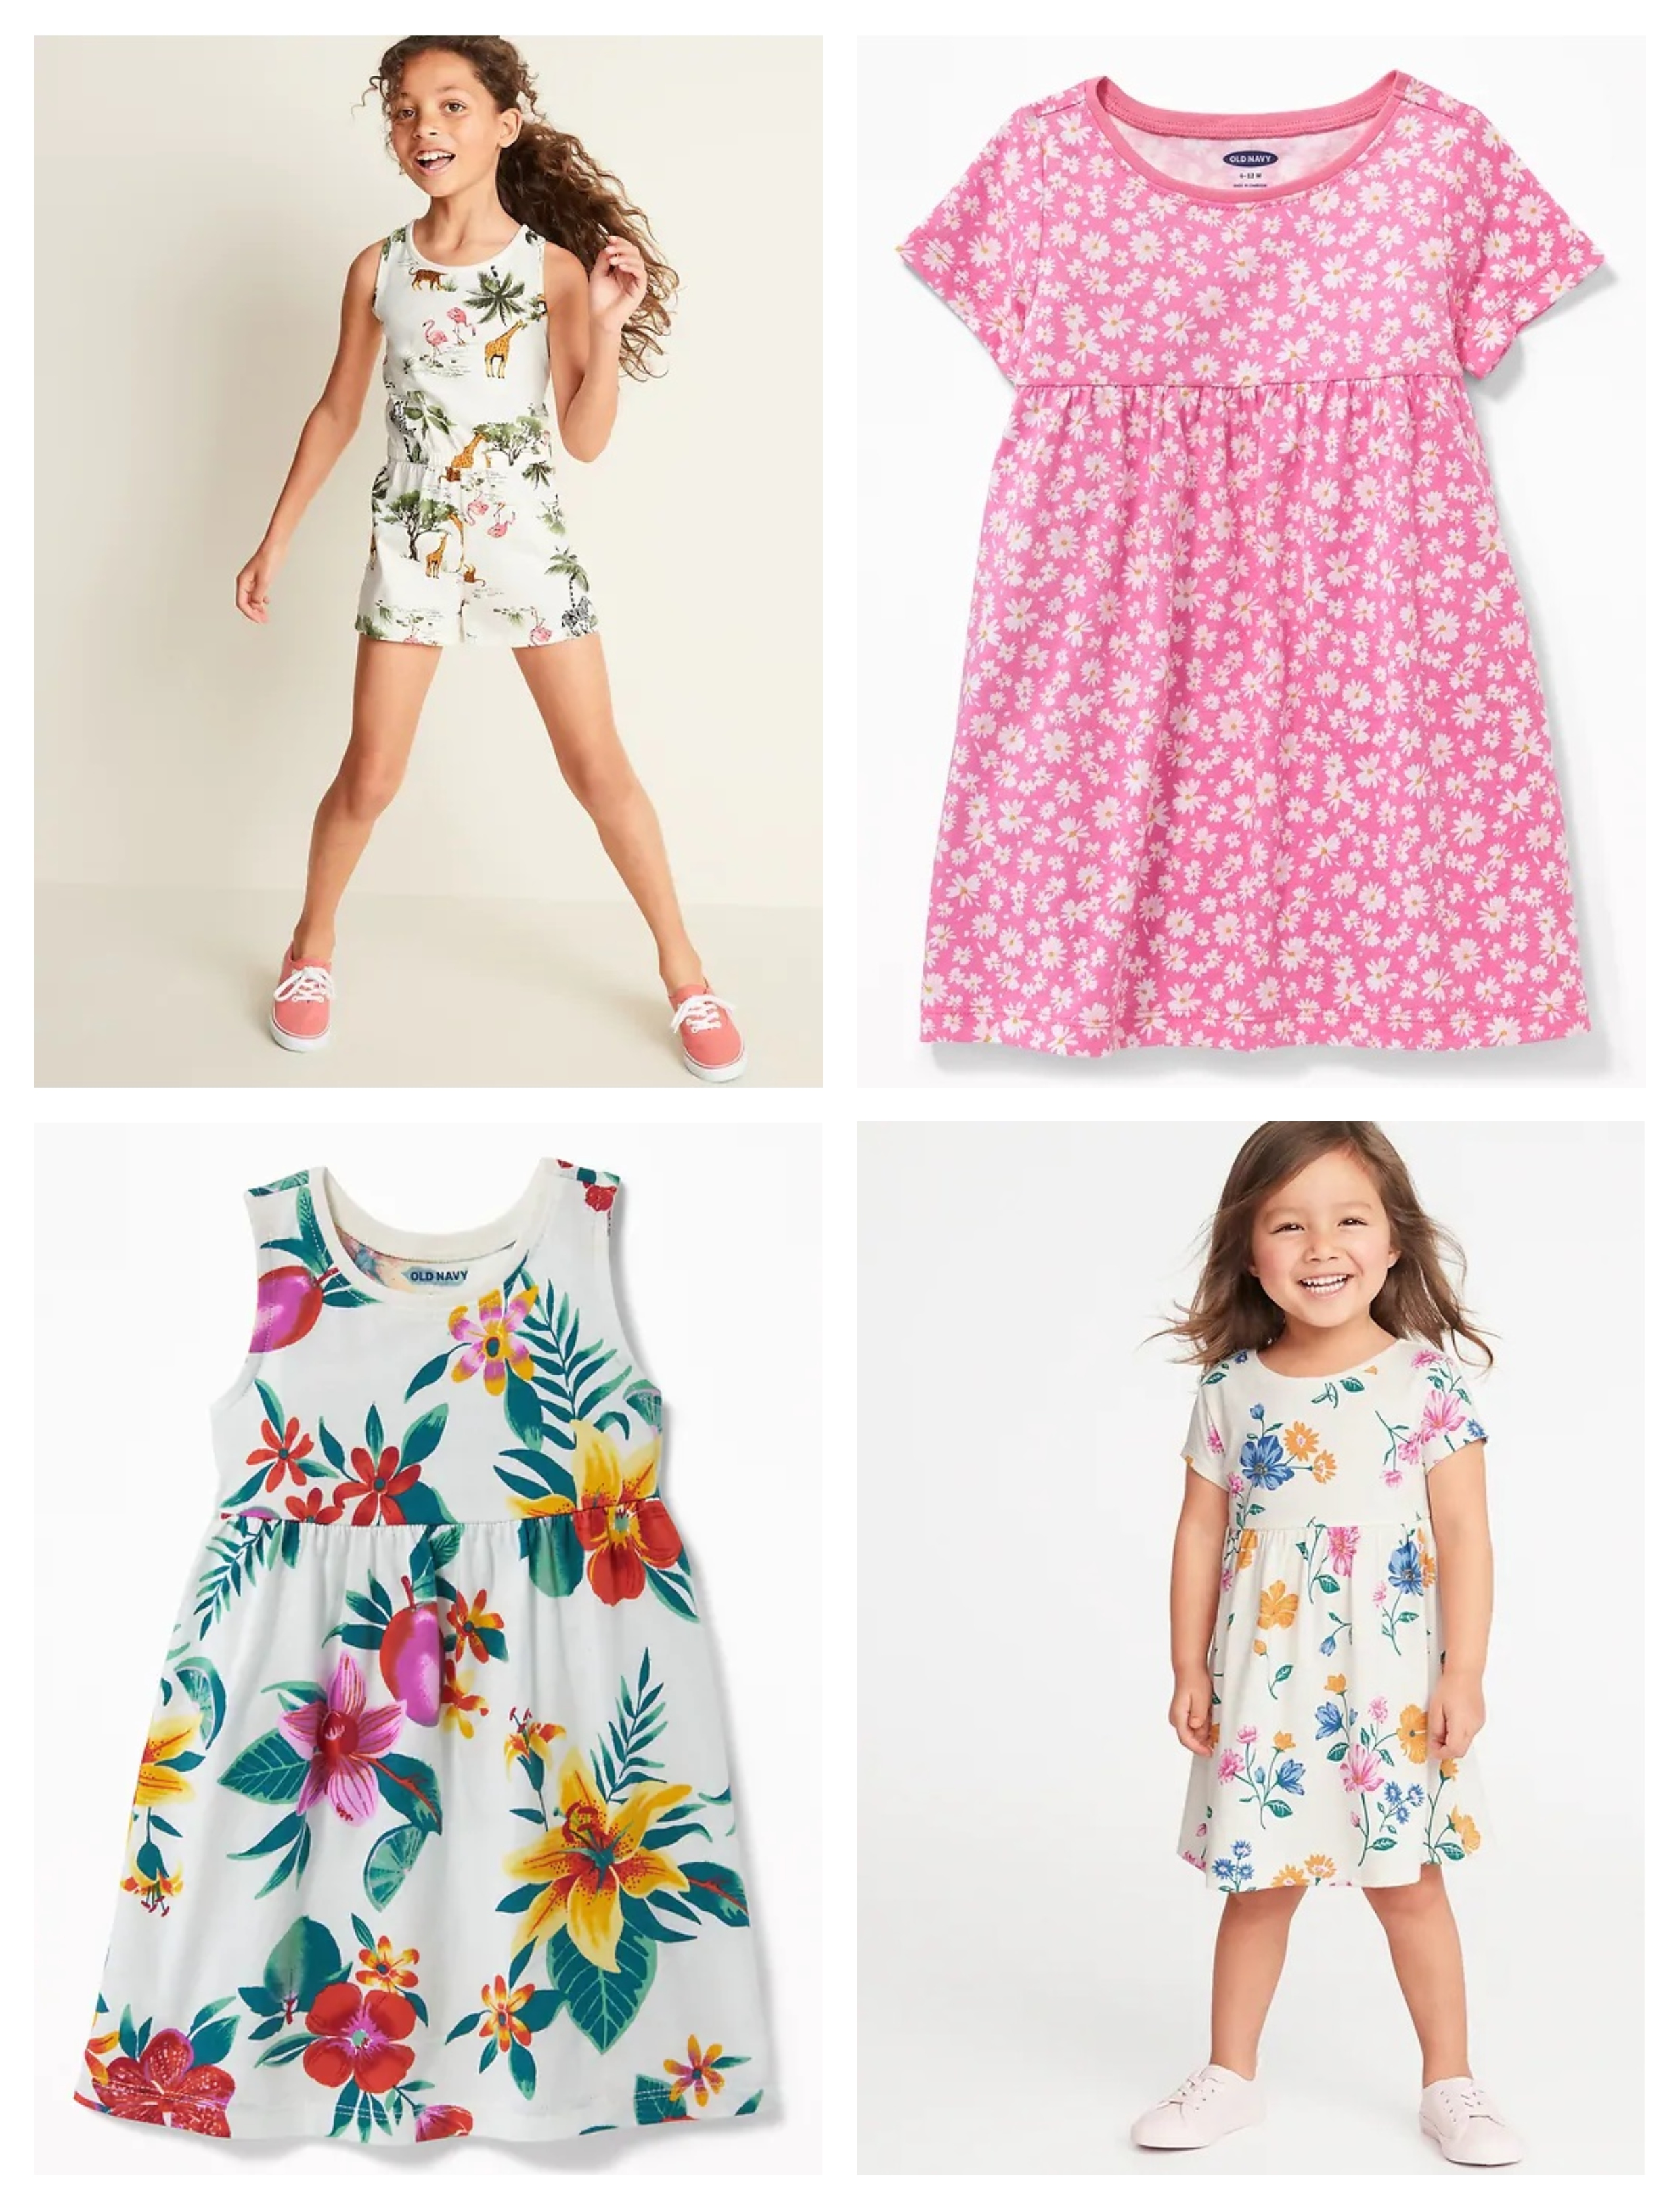 03f9c448b Old Navy: $4 Baby Dresses, $6 Toddler Dresses, $8 Girls' Rompers – TODAY  ONLY!